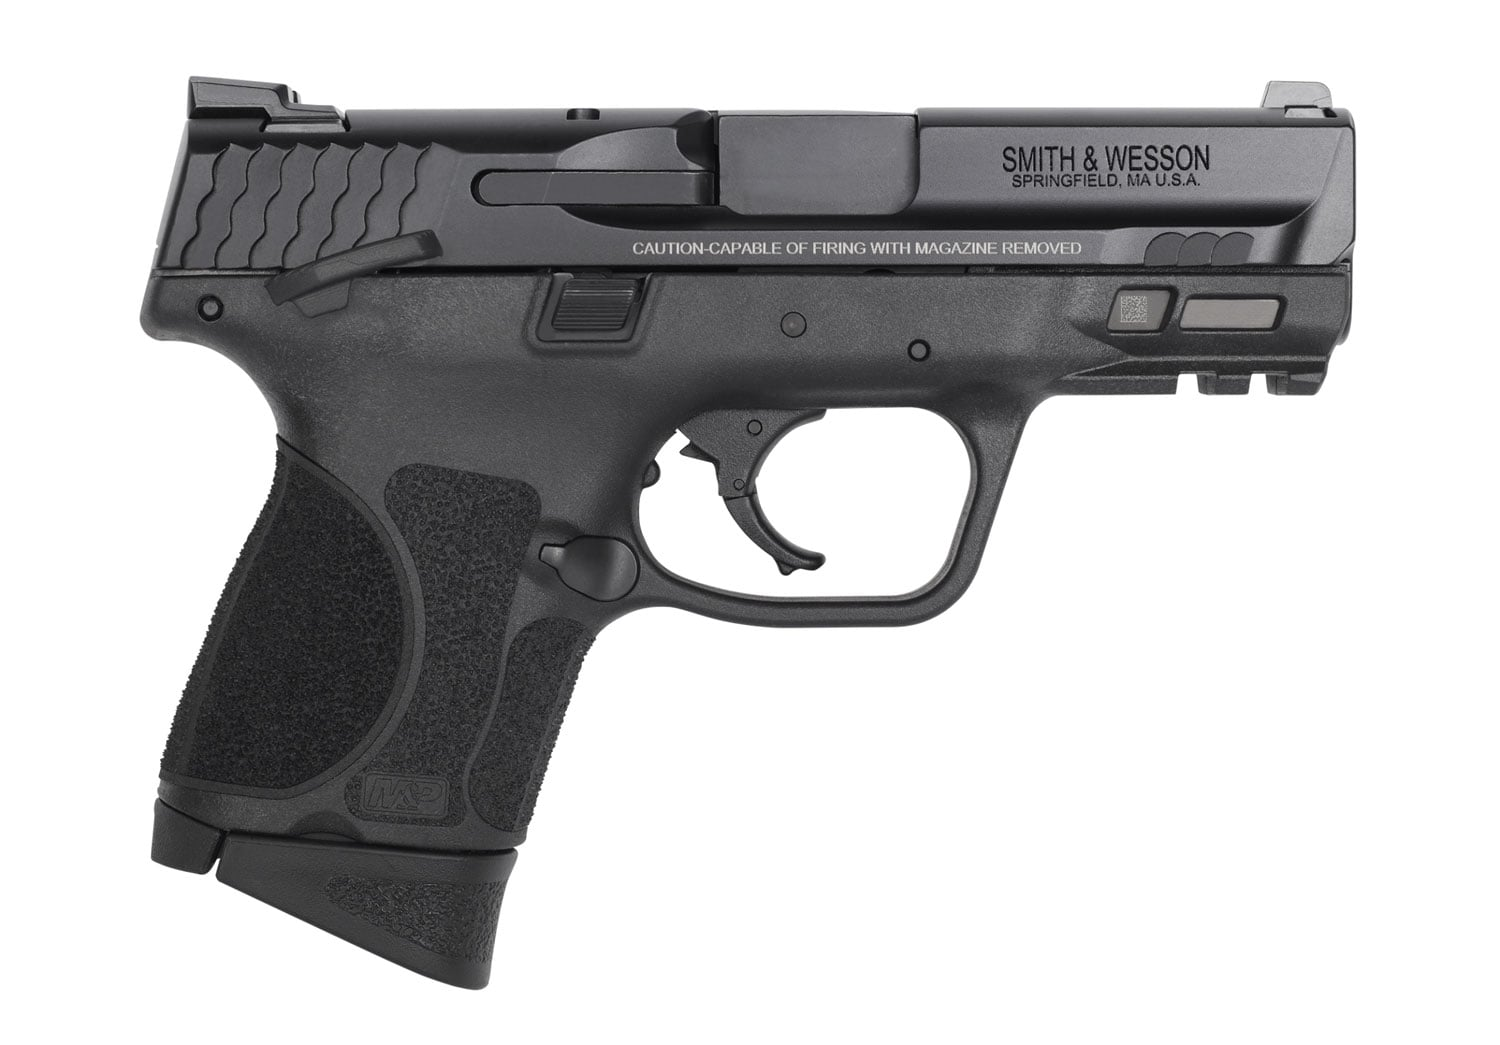 Smith & Wesson M&P9 M2.0 Compact 12 + 1 capacity